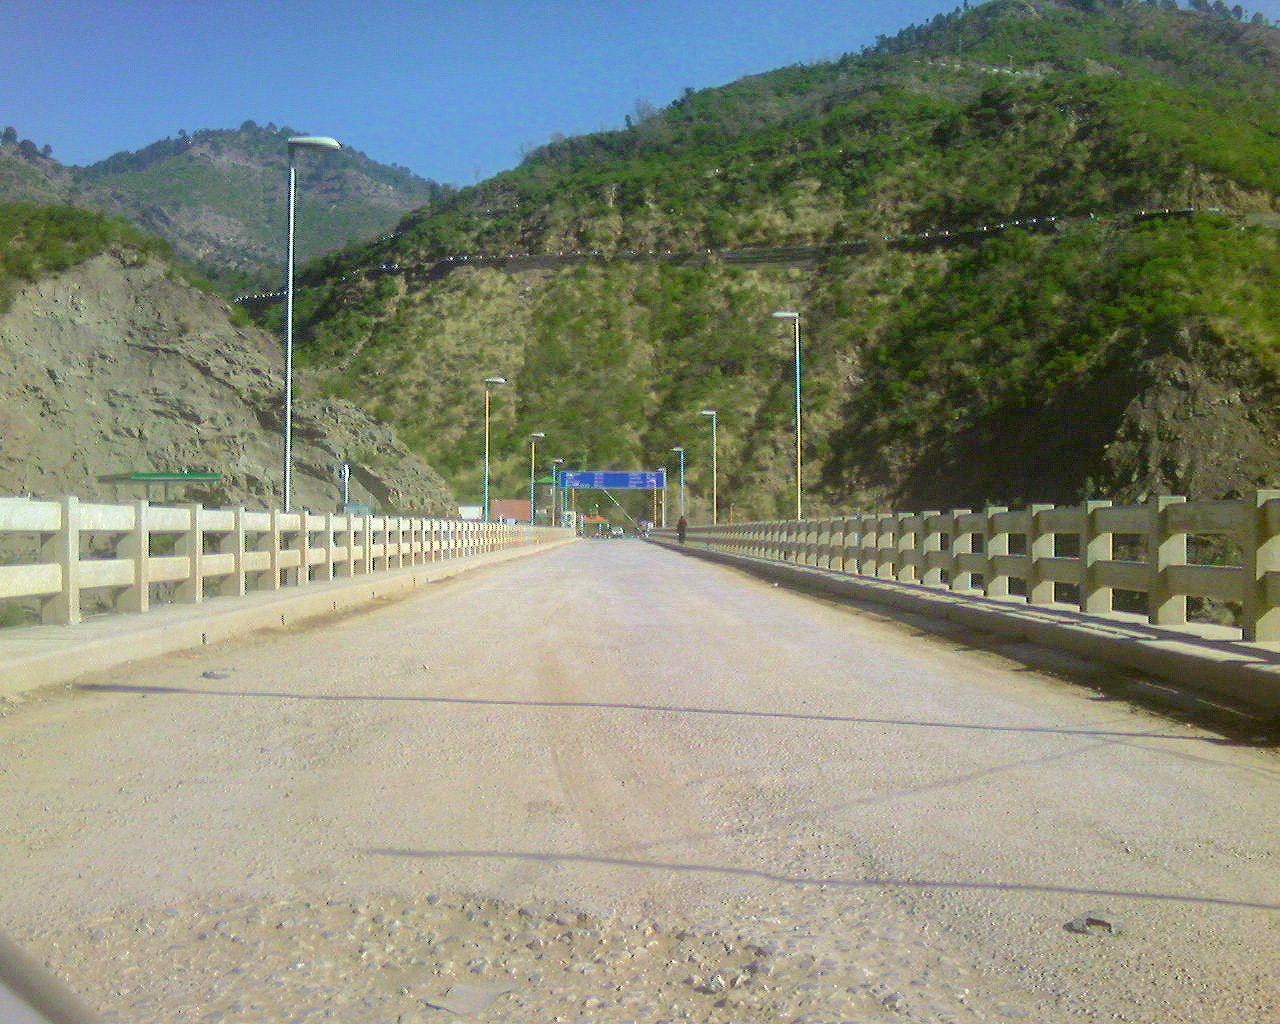 Azad Patan bridge crossing over Jhelum, entry point to Azad Kashmir